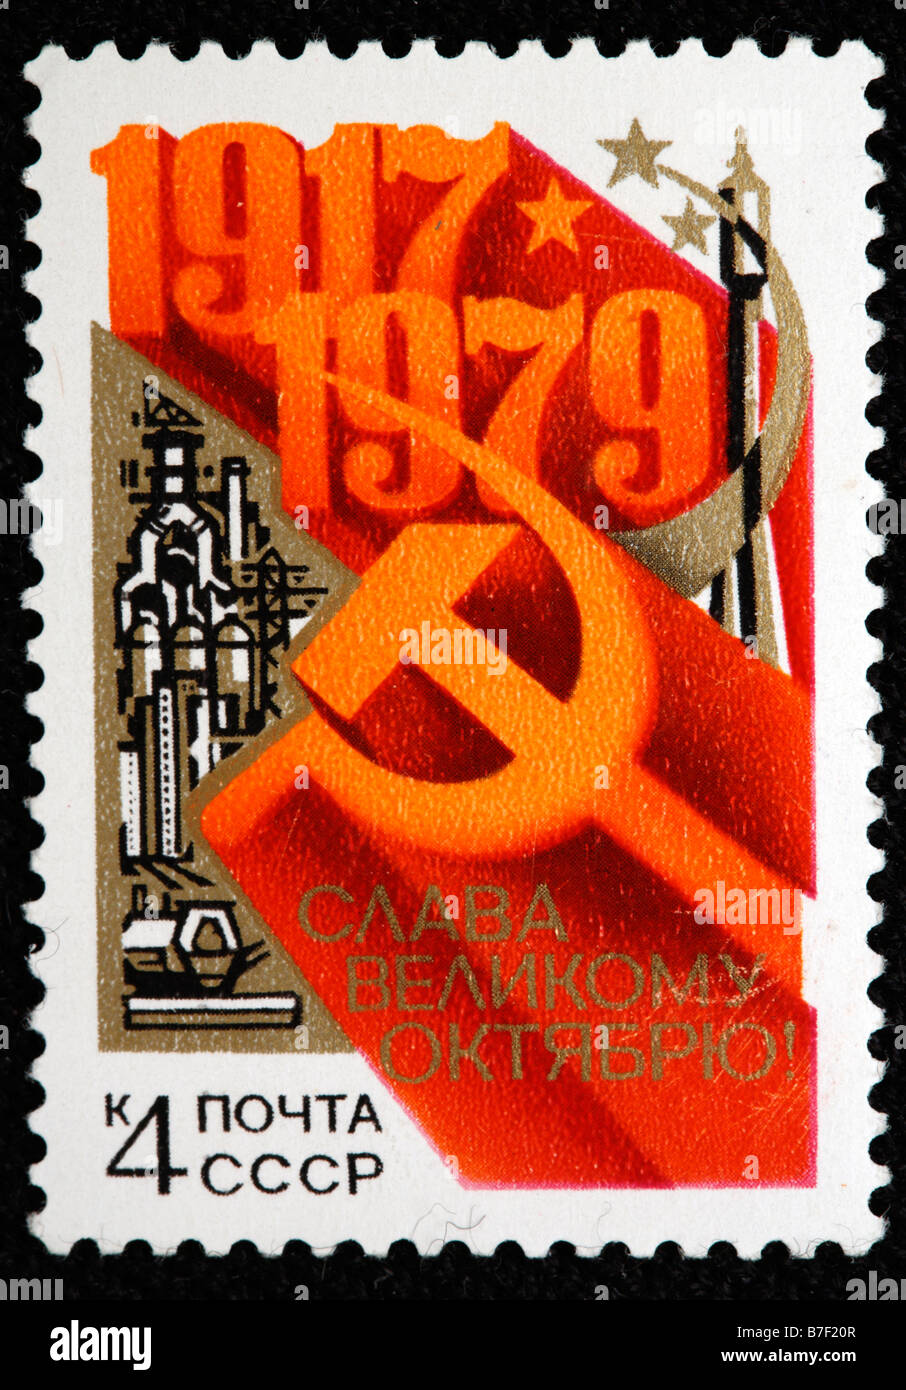 62 anniversary of Russian October revolution, postage stamp, USSR, 1979 - Stock Image